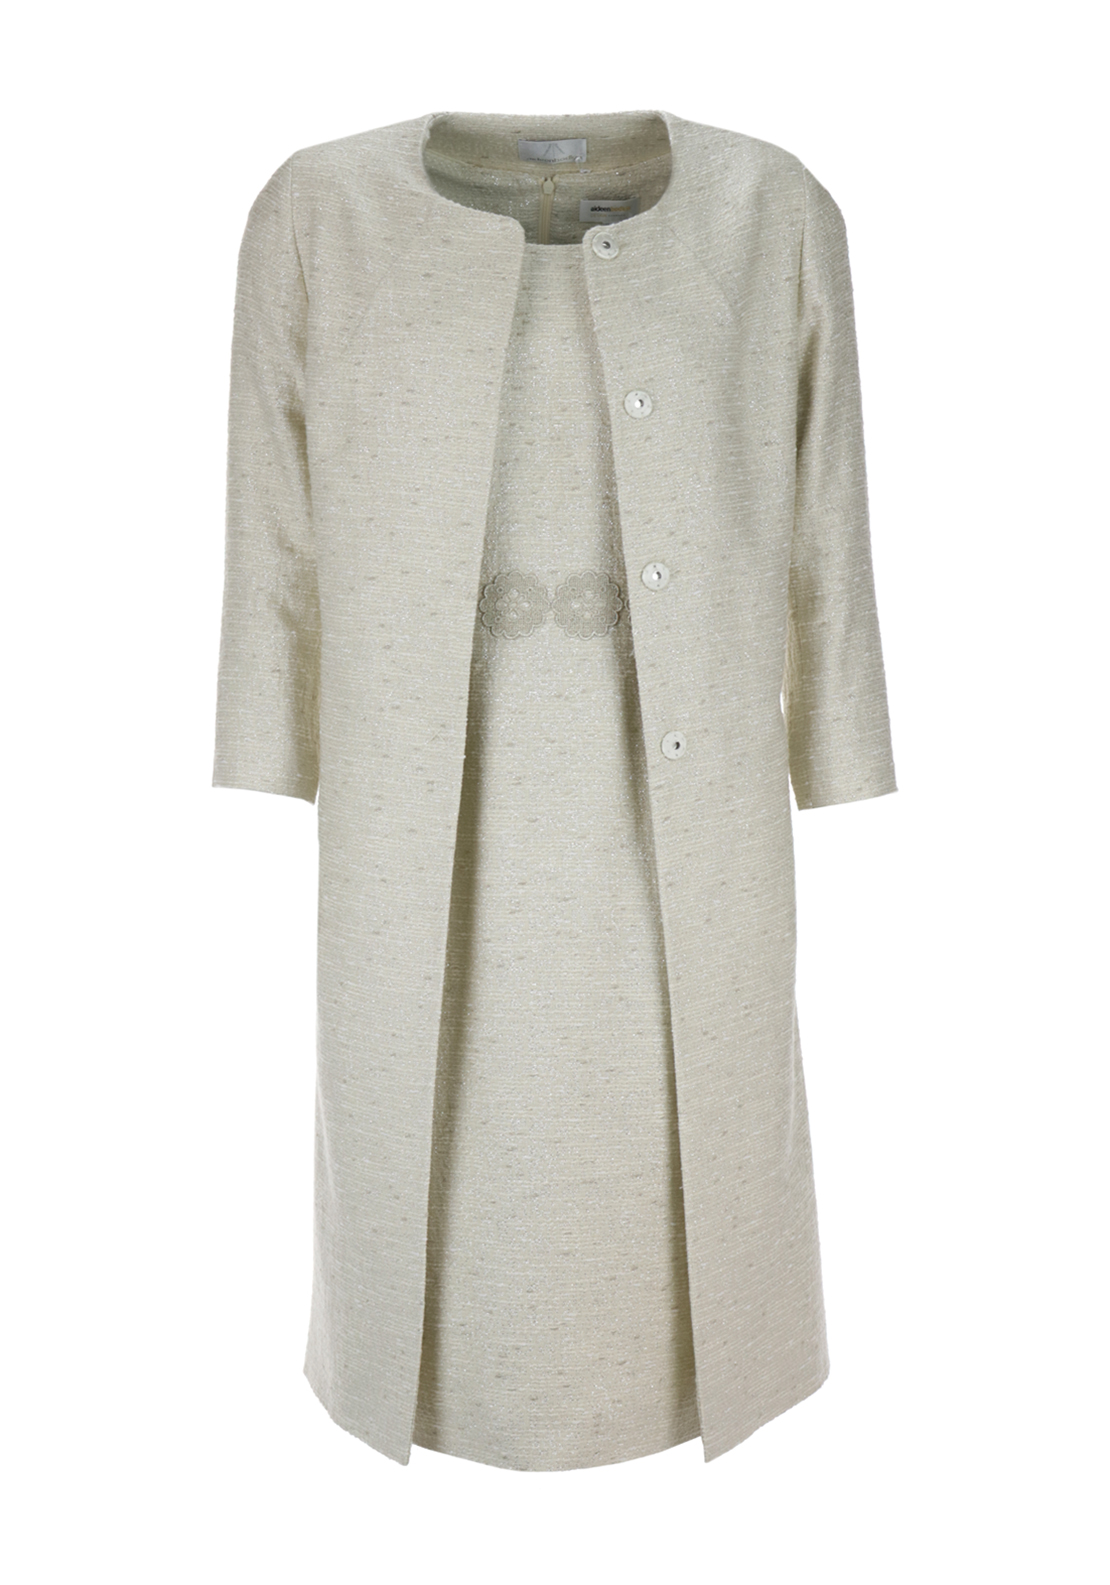 Aideen Bodkin Vista Dress & Calma Coat Outfit, Cream